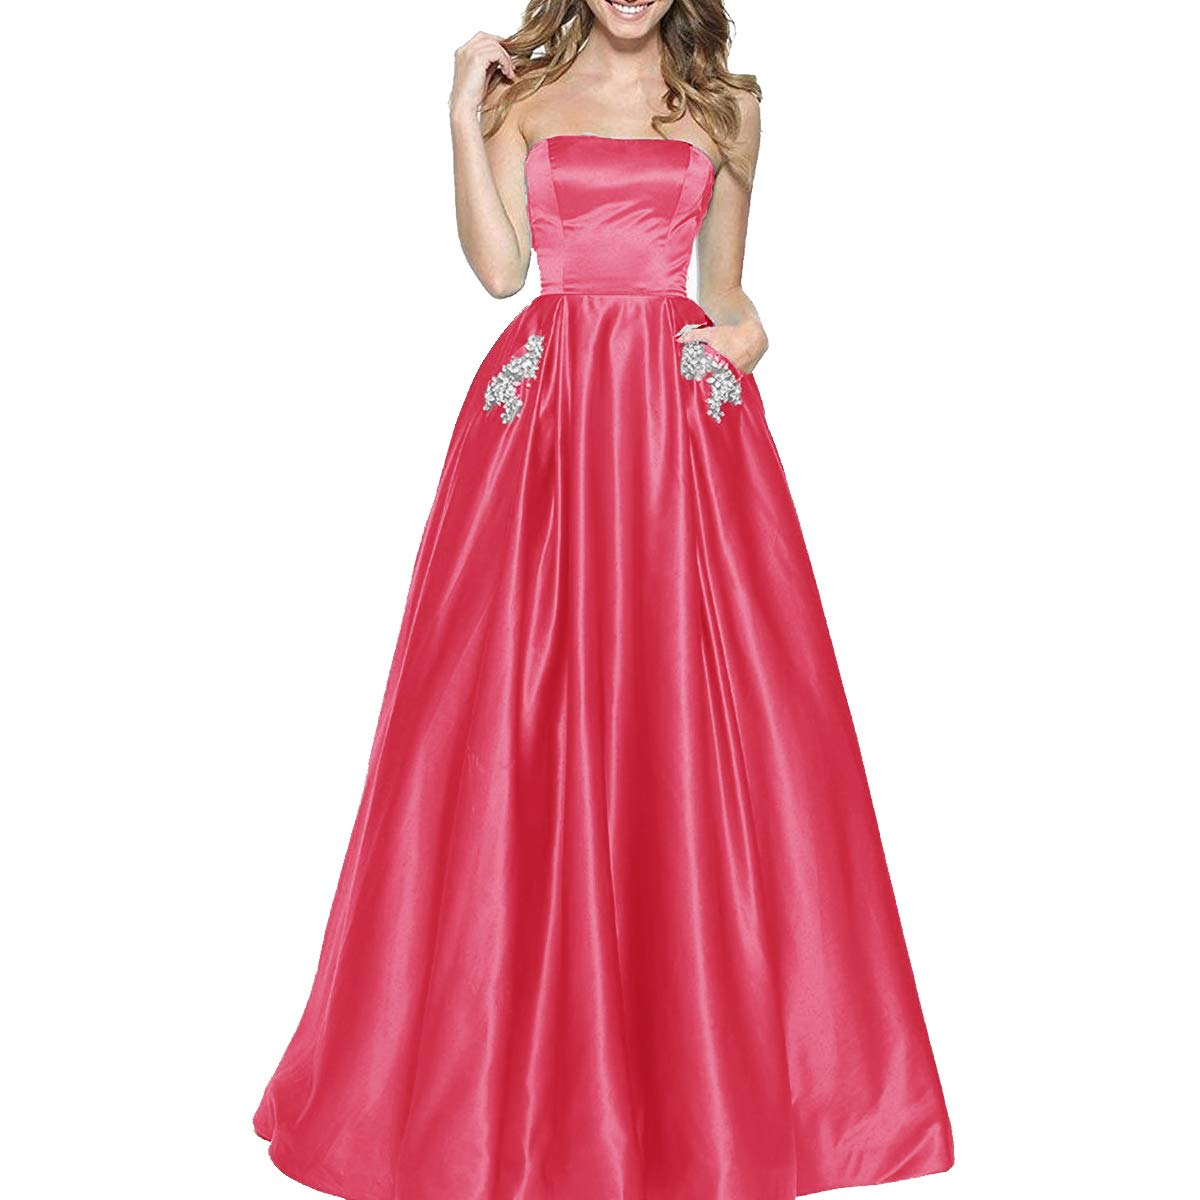 Watermelon TTYbridal Women's ALine Strapless Beaded Prom Dresses Long Satin Homecoming Party Gown with Pockets